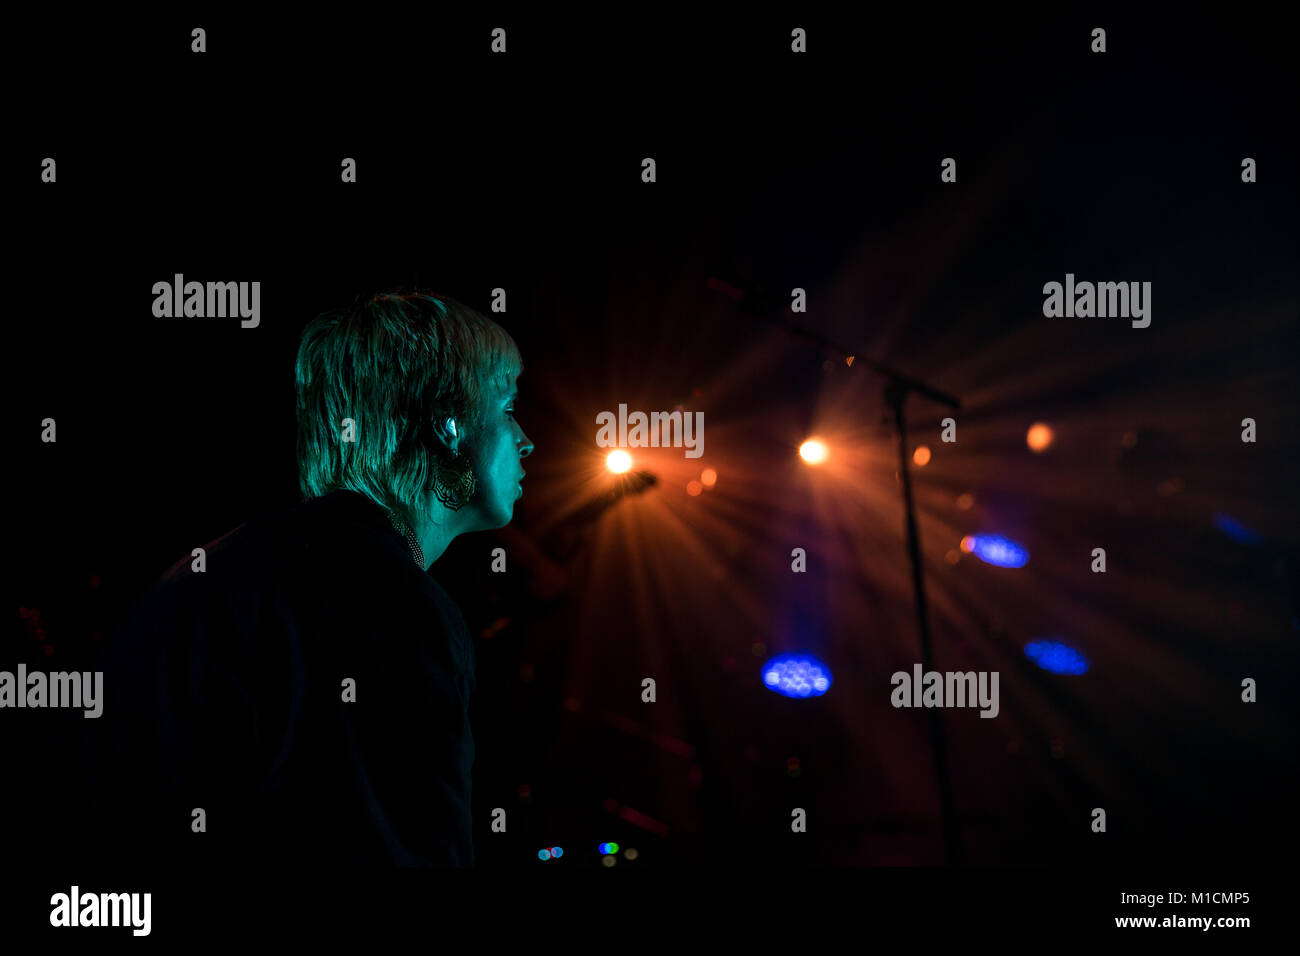 Toronto, CANADA. 29th Jan, 2018. Danish dance music artist Karen Marie Aagaard Ørsted Andersen, better known - Stock Image